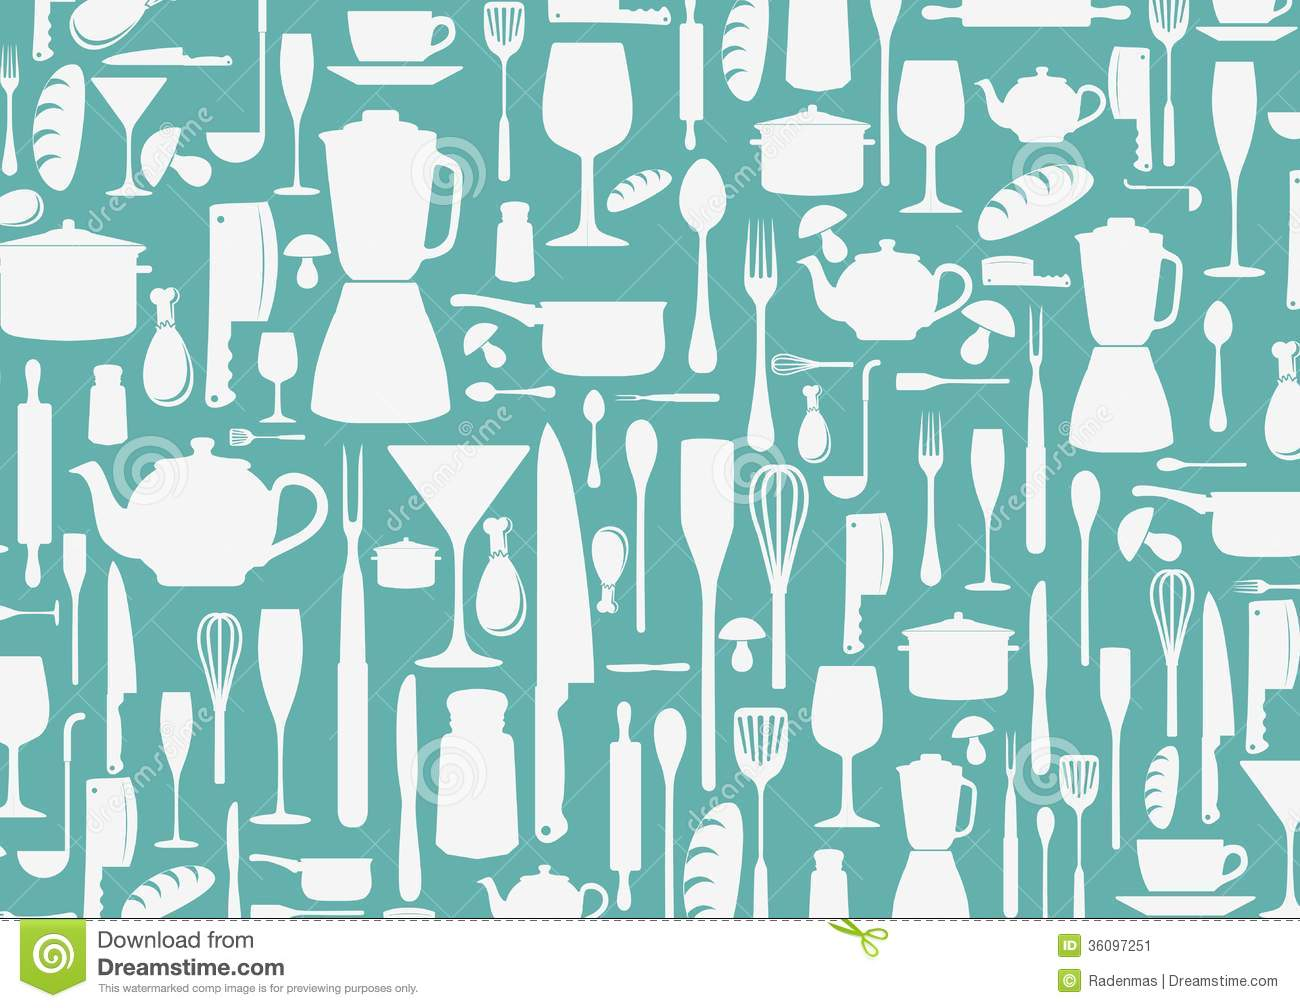 Stock Illustration Set Small Icons Household Appliances Consumer Electronics Vector Kitchen Bathroom Machine Cooking Image45043954 besides Shabby Chic House Plans Html likewise Alumawood Photo Gallery in addition Fancy Beige Kitchen Cabi  Made Of Wood Designed For Floating Kitchen Design Farmhouse Kitchen Design Virtual Kitchen Design Tool Kitchen Picture Beige Kitchen 4 in addition Pizza Shop Layout. on kitchen design plans template